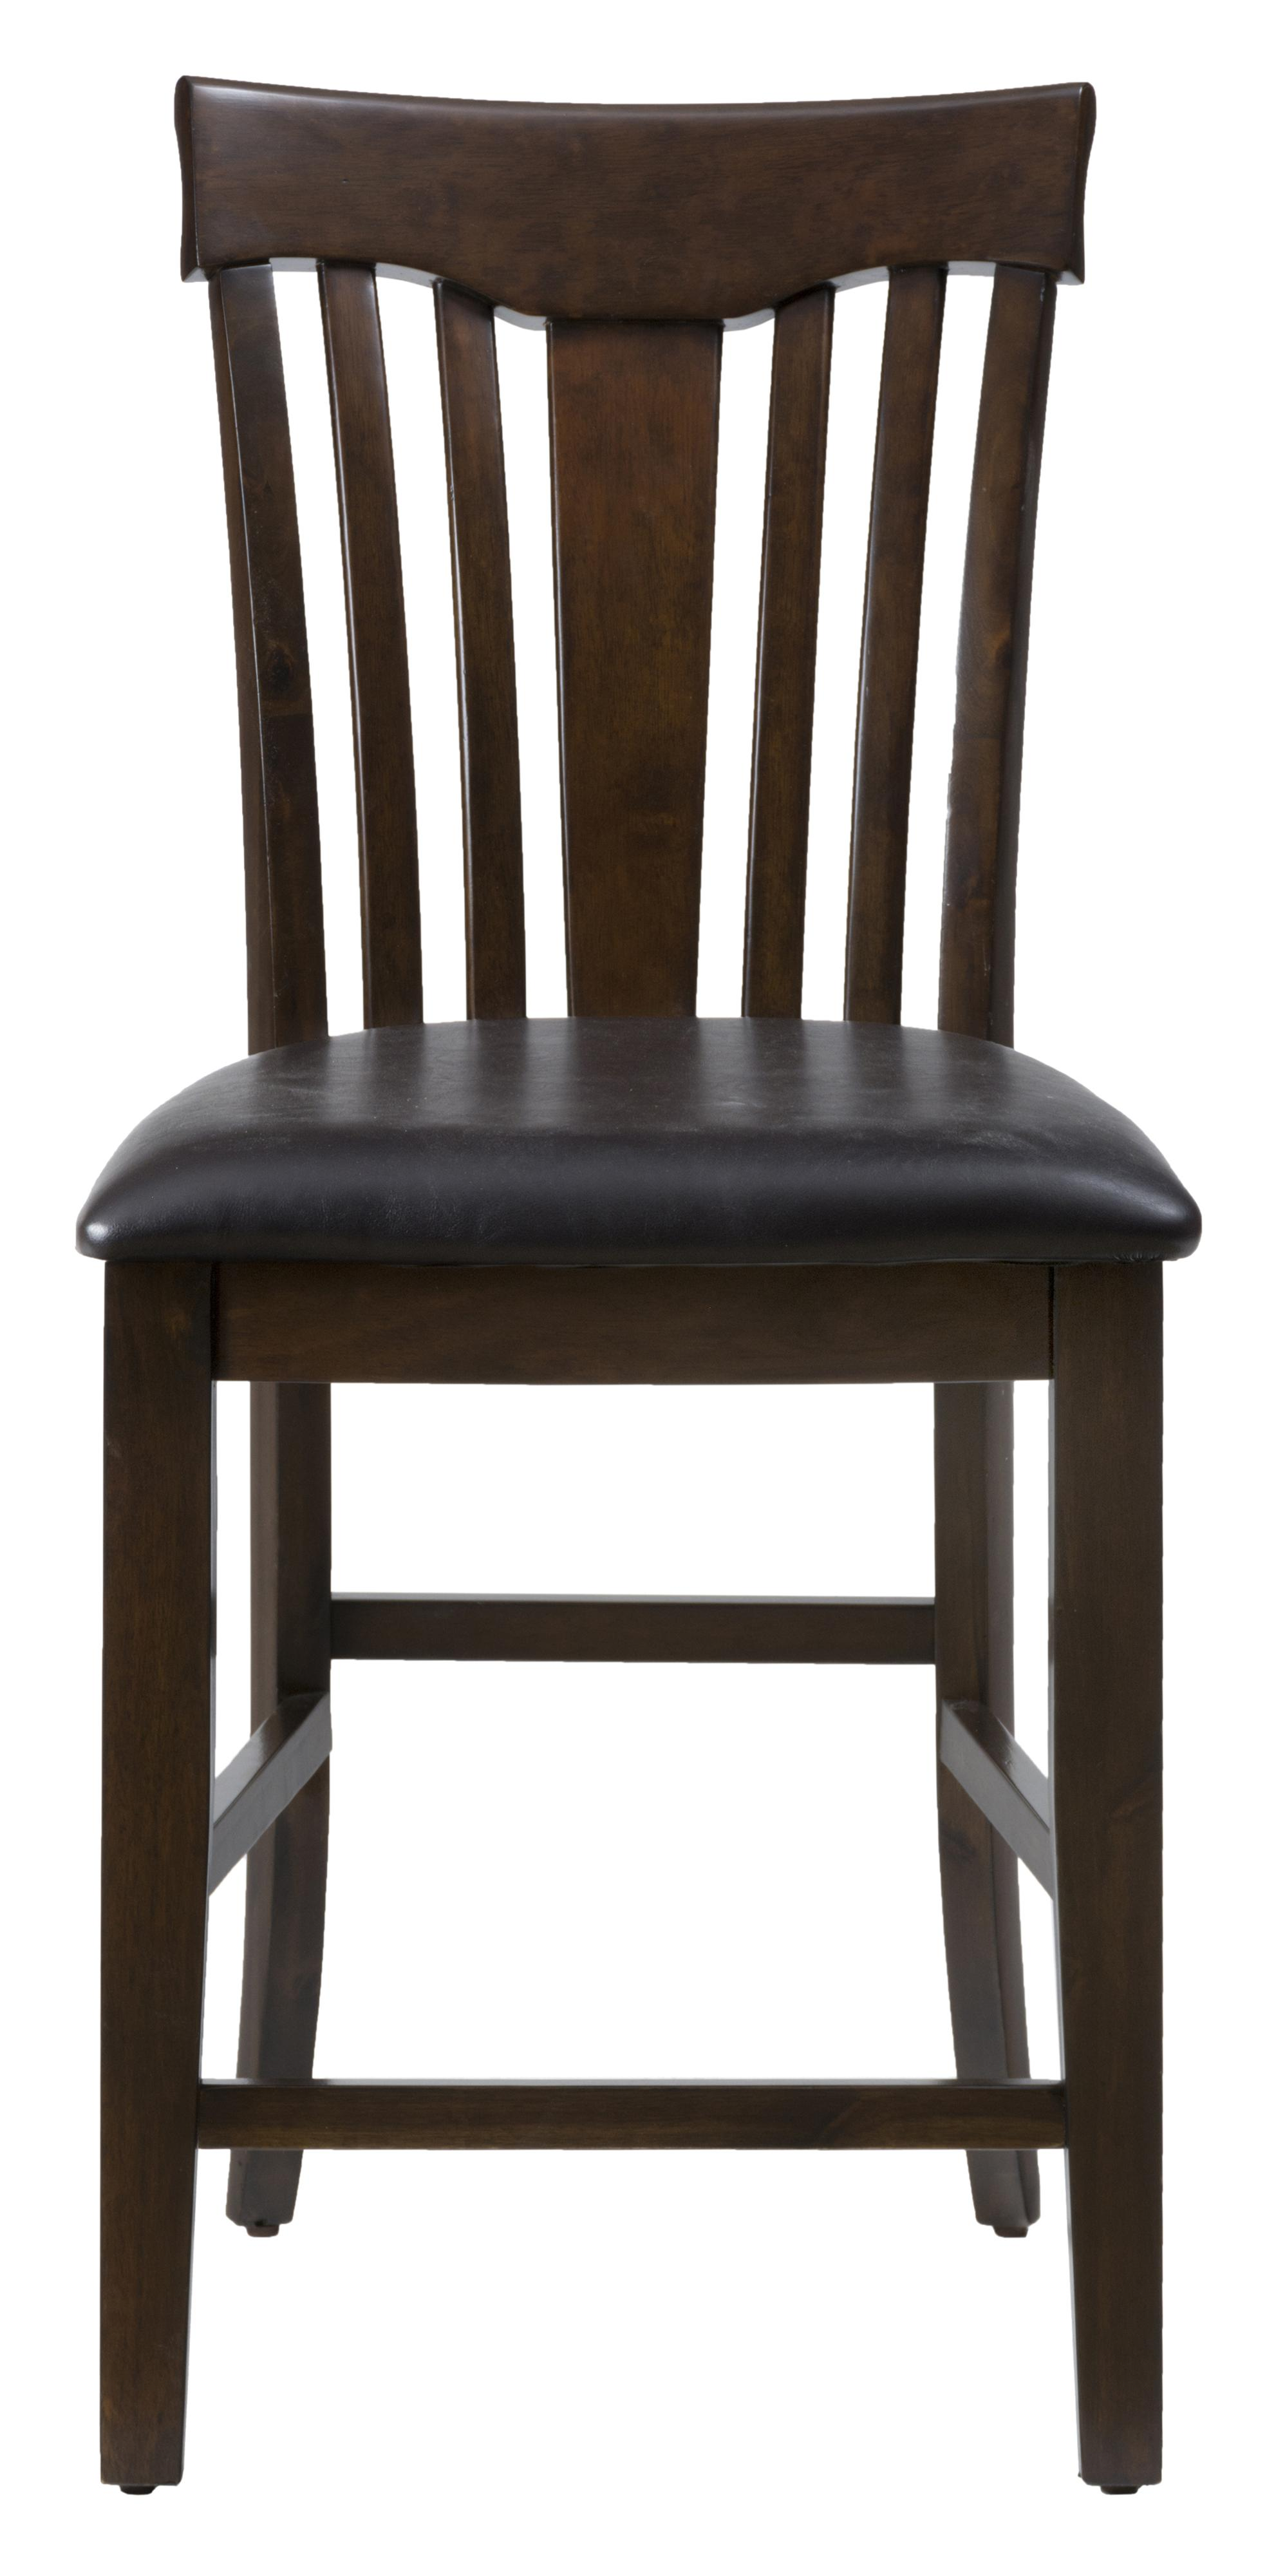 Bar Height Dining Chairs Jofran Mirandela Birch 836 Bs947kd Counter Height Chair